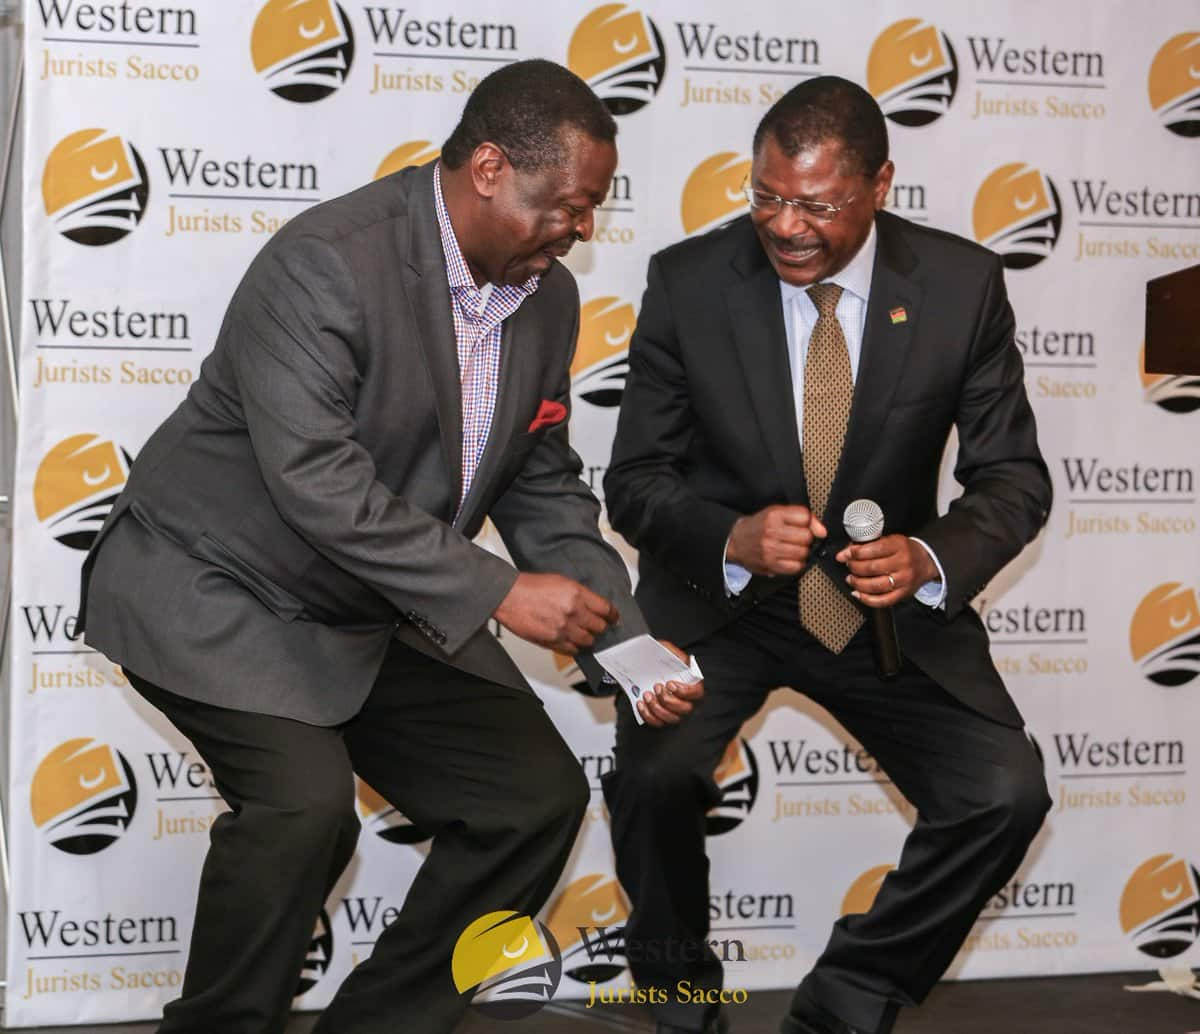 Wetang'ula, Mudavadi and Eugene Wamalwa in closed door meeting as search for Luhya presidential candidate intensifies